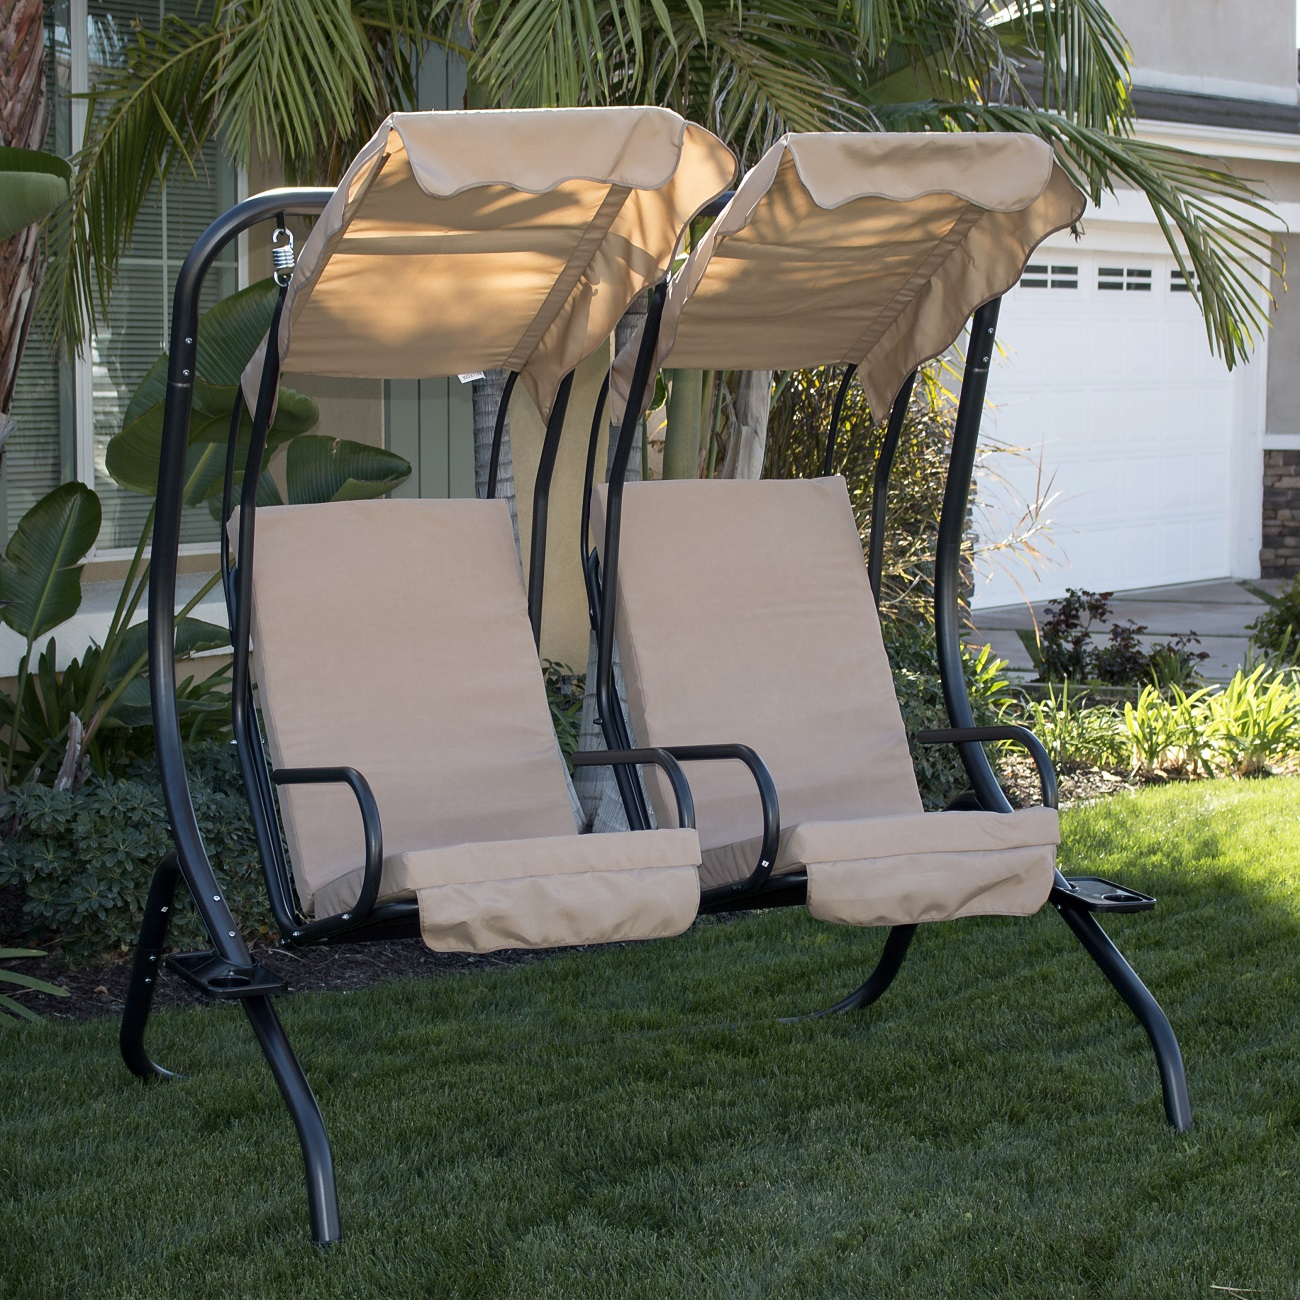 New Outdoor Double Swing Set 2 Person Canopy Patio